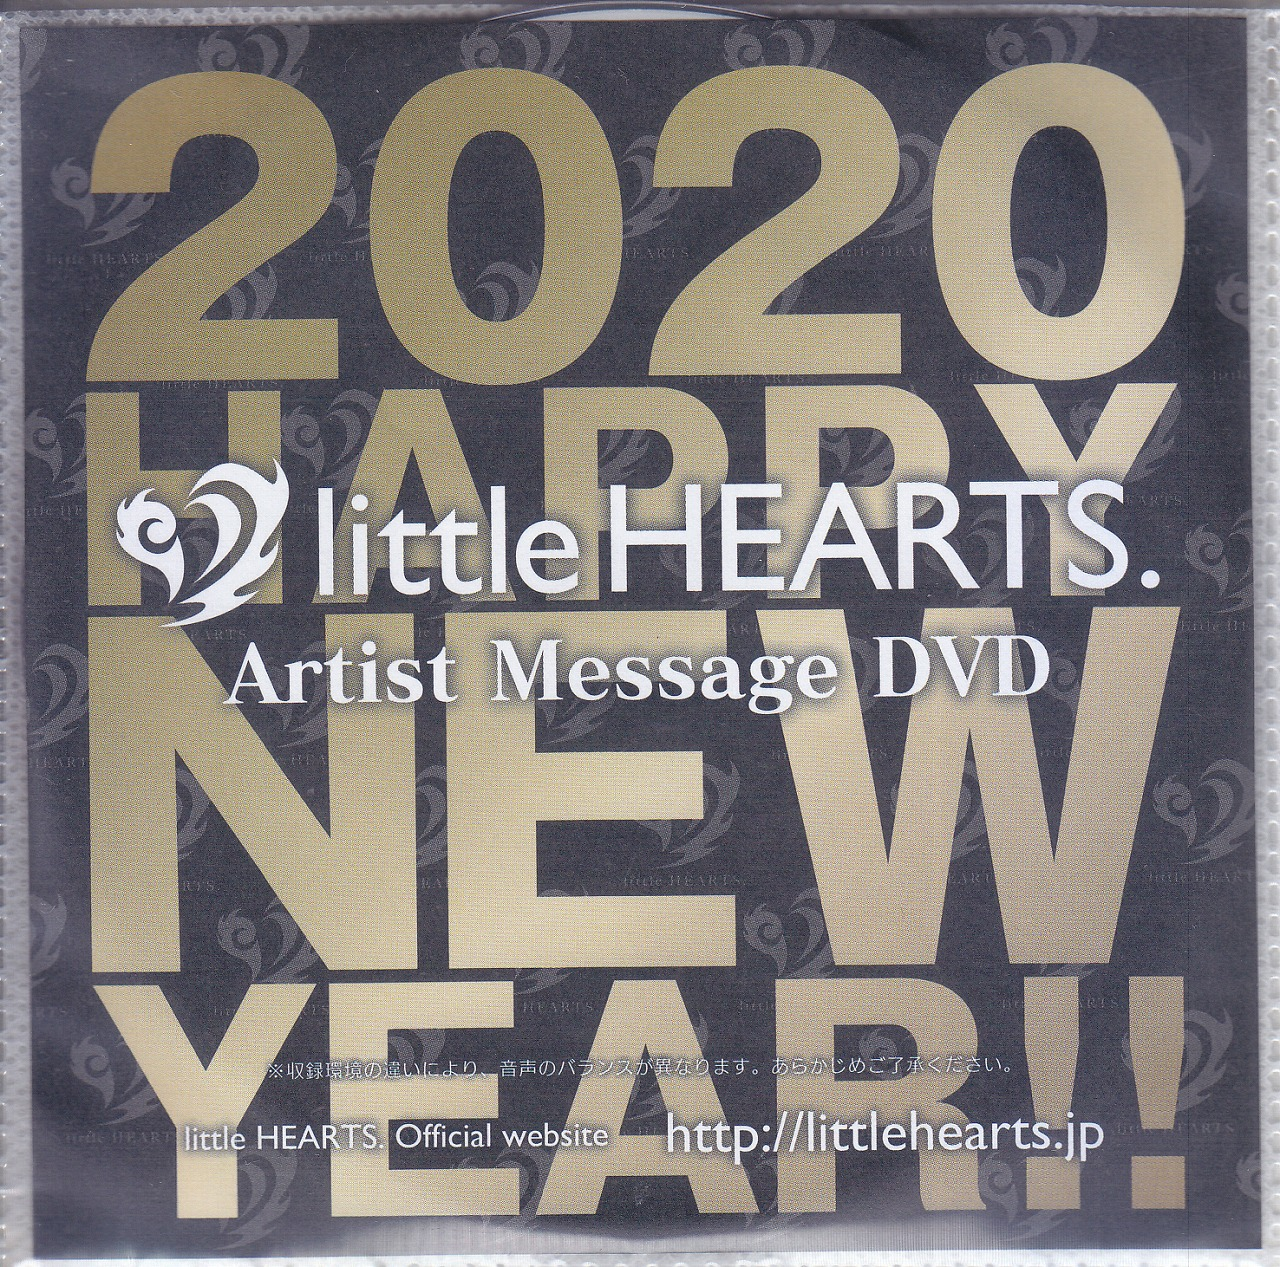 オムニバスラ の DVD little HEARTS. Artist Message DVD